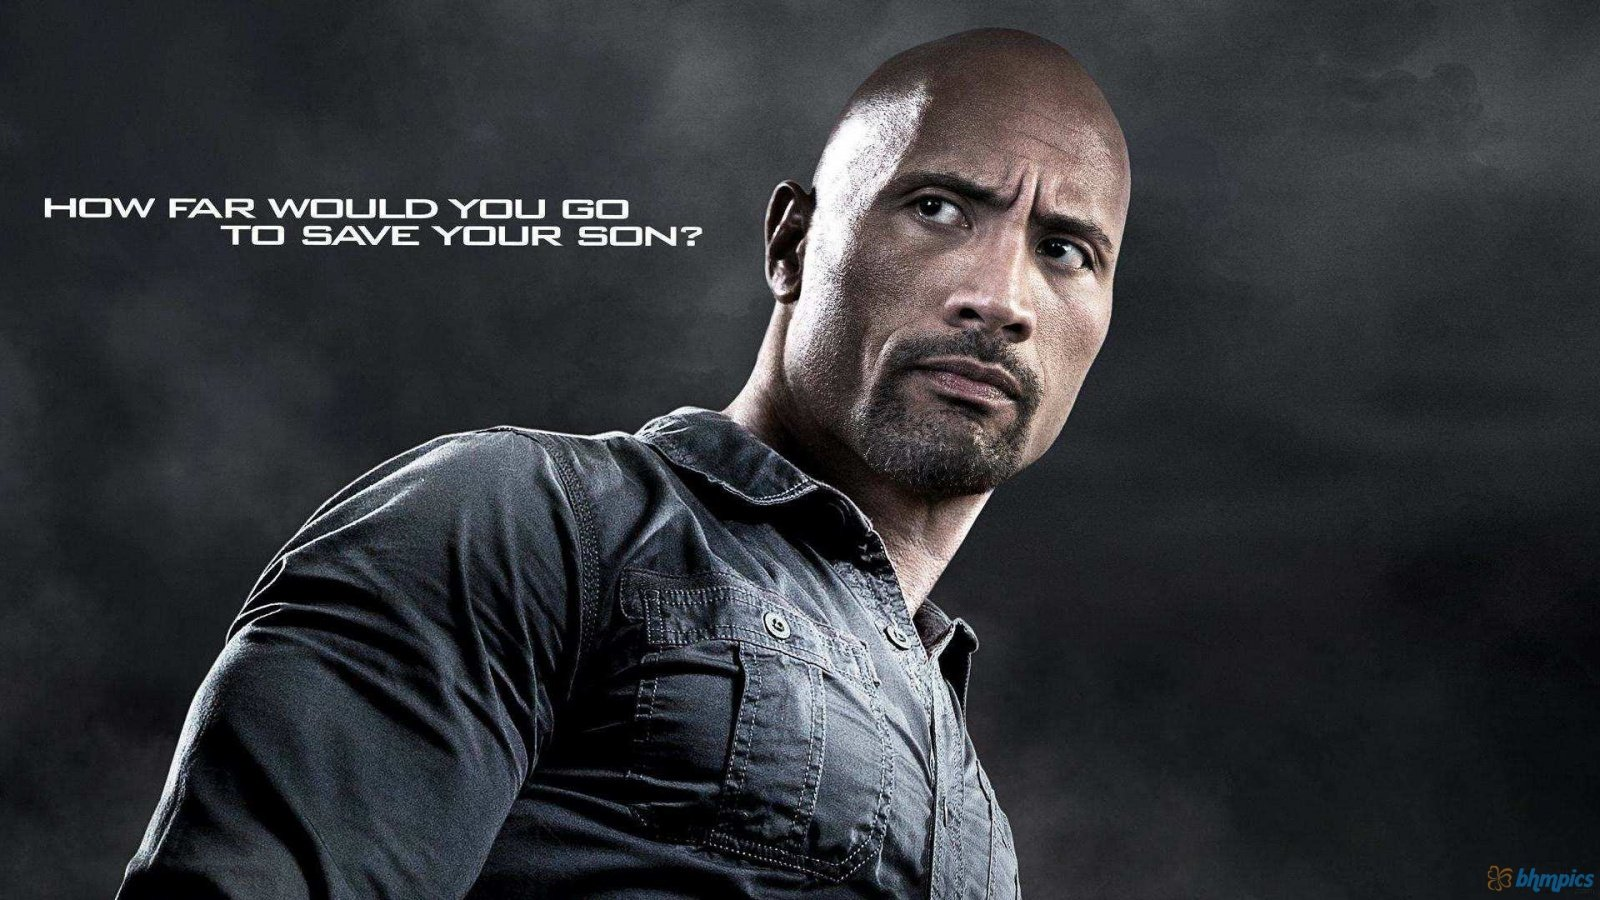 Dwayne Johnson Wallpaper For Computer: Quotes Dwayne Johnson Wallpaper. QuotesGram